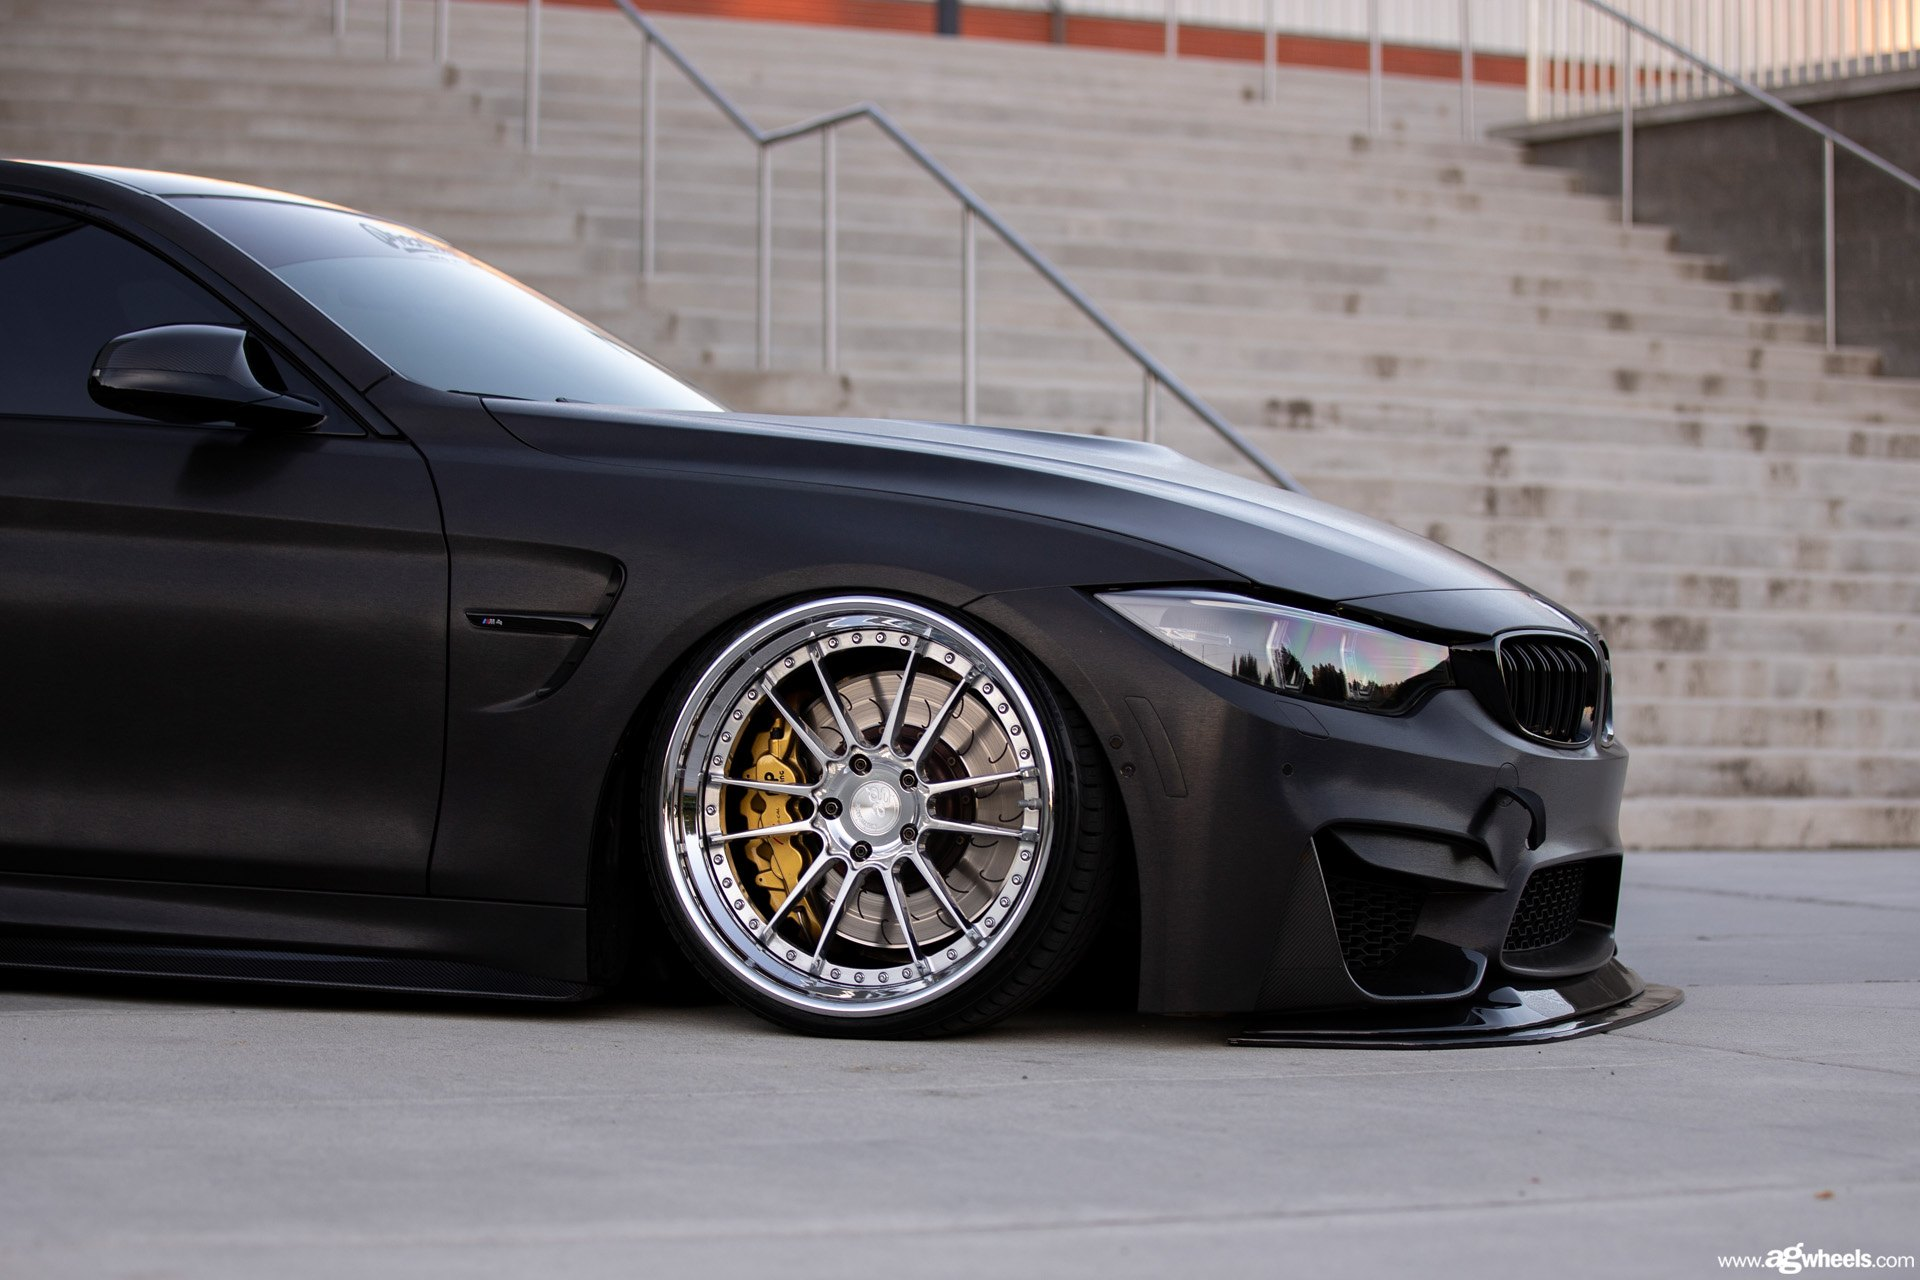 Stanced Blacked Out Bmw 4 Series Shod In Contrasting Chrome Rims Carid Com Gallery